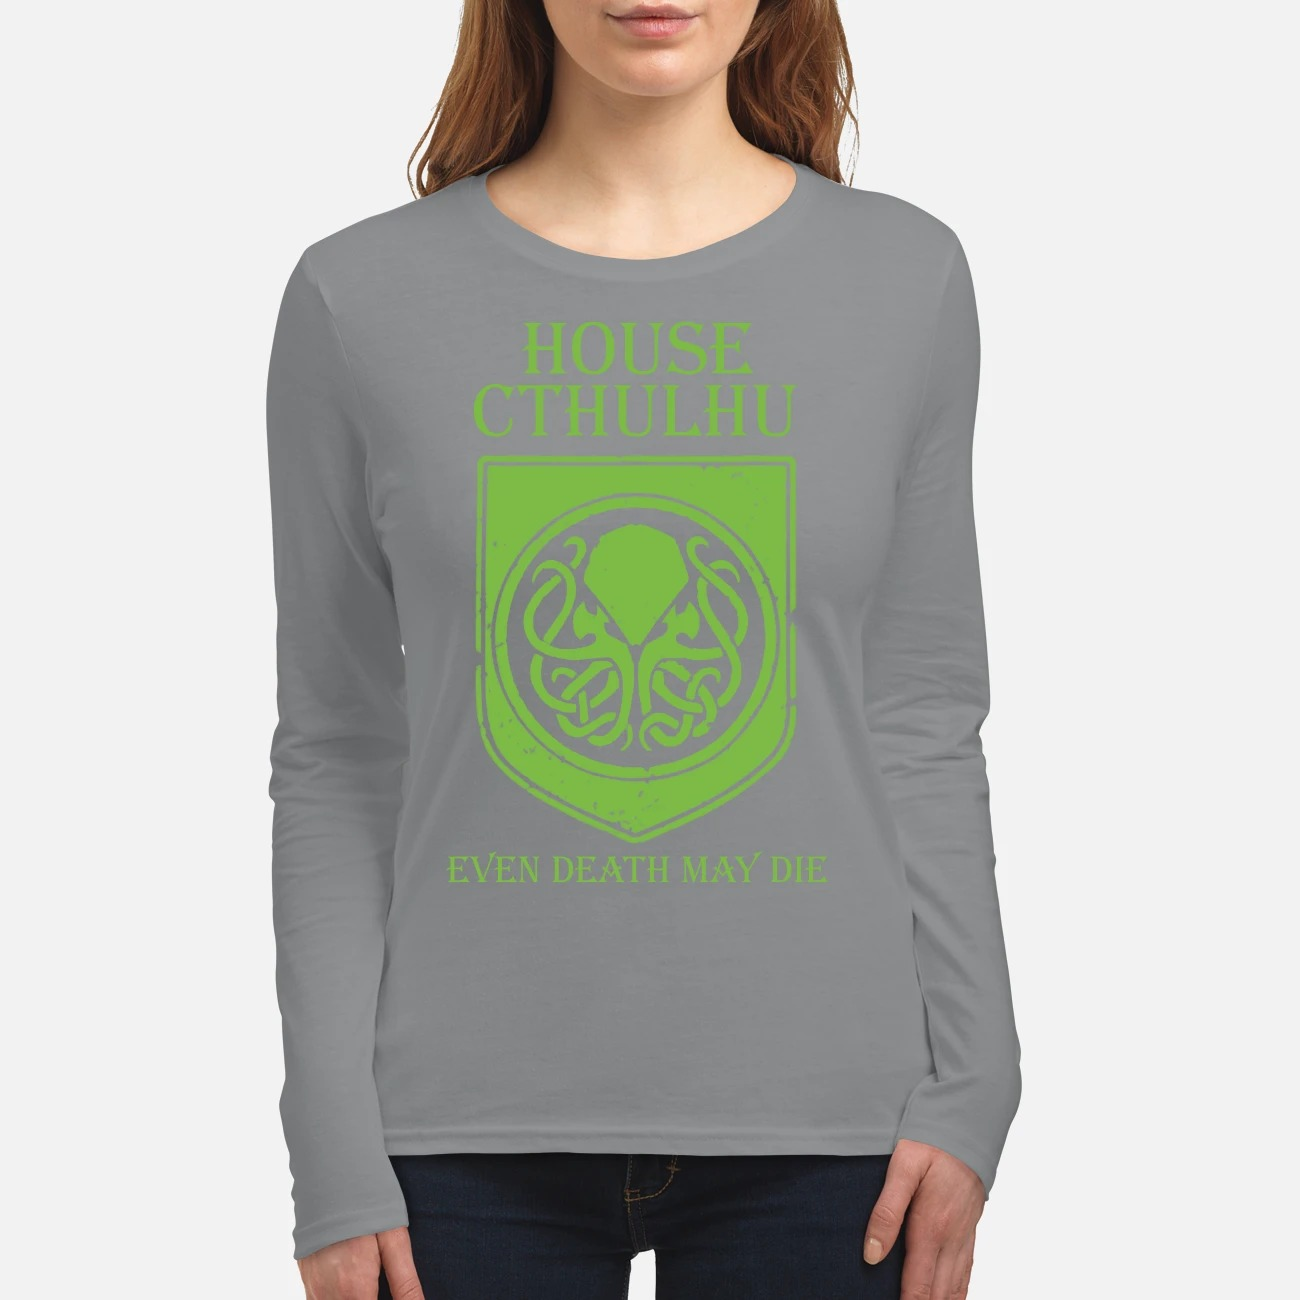 House cthulhu even death may die women's long sleeved shirt